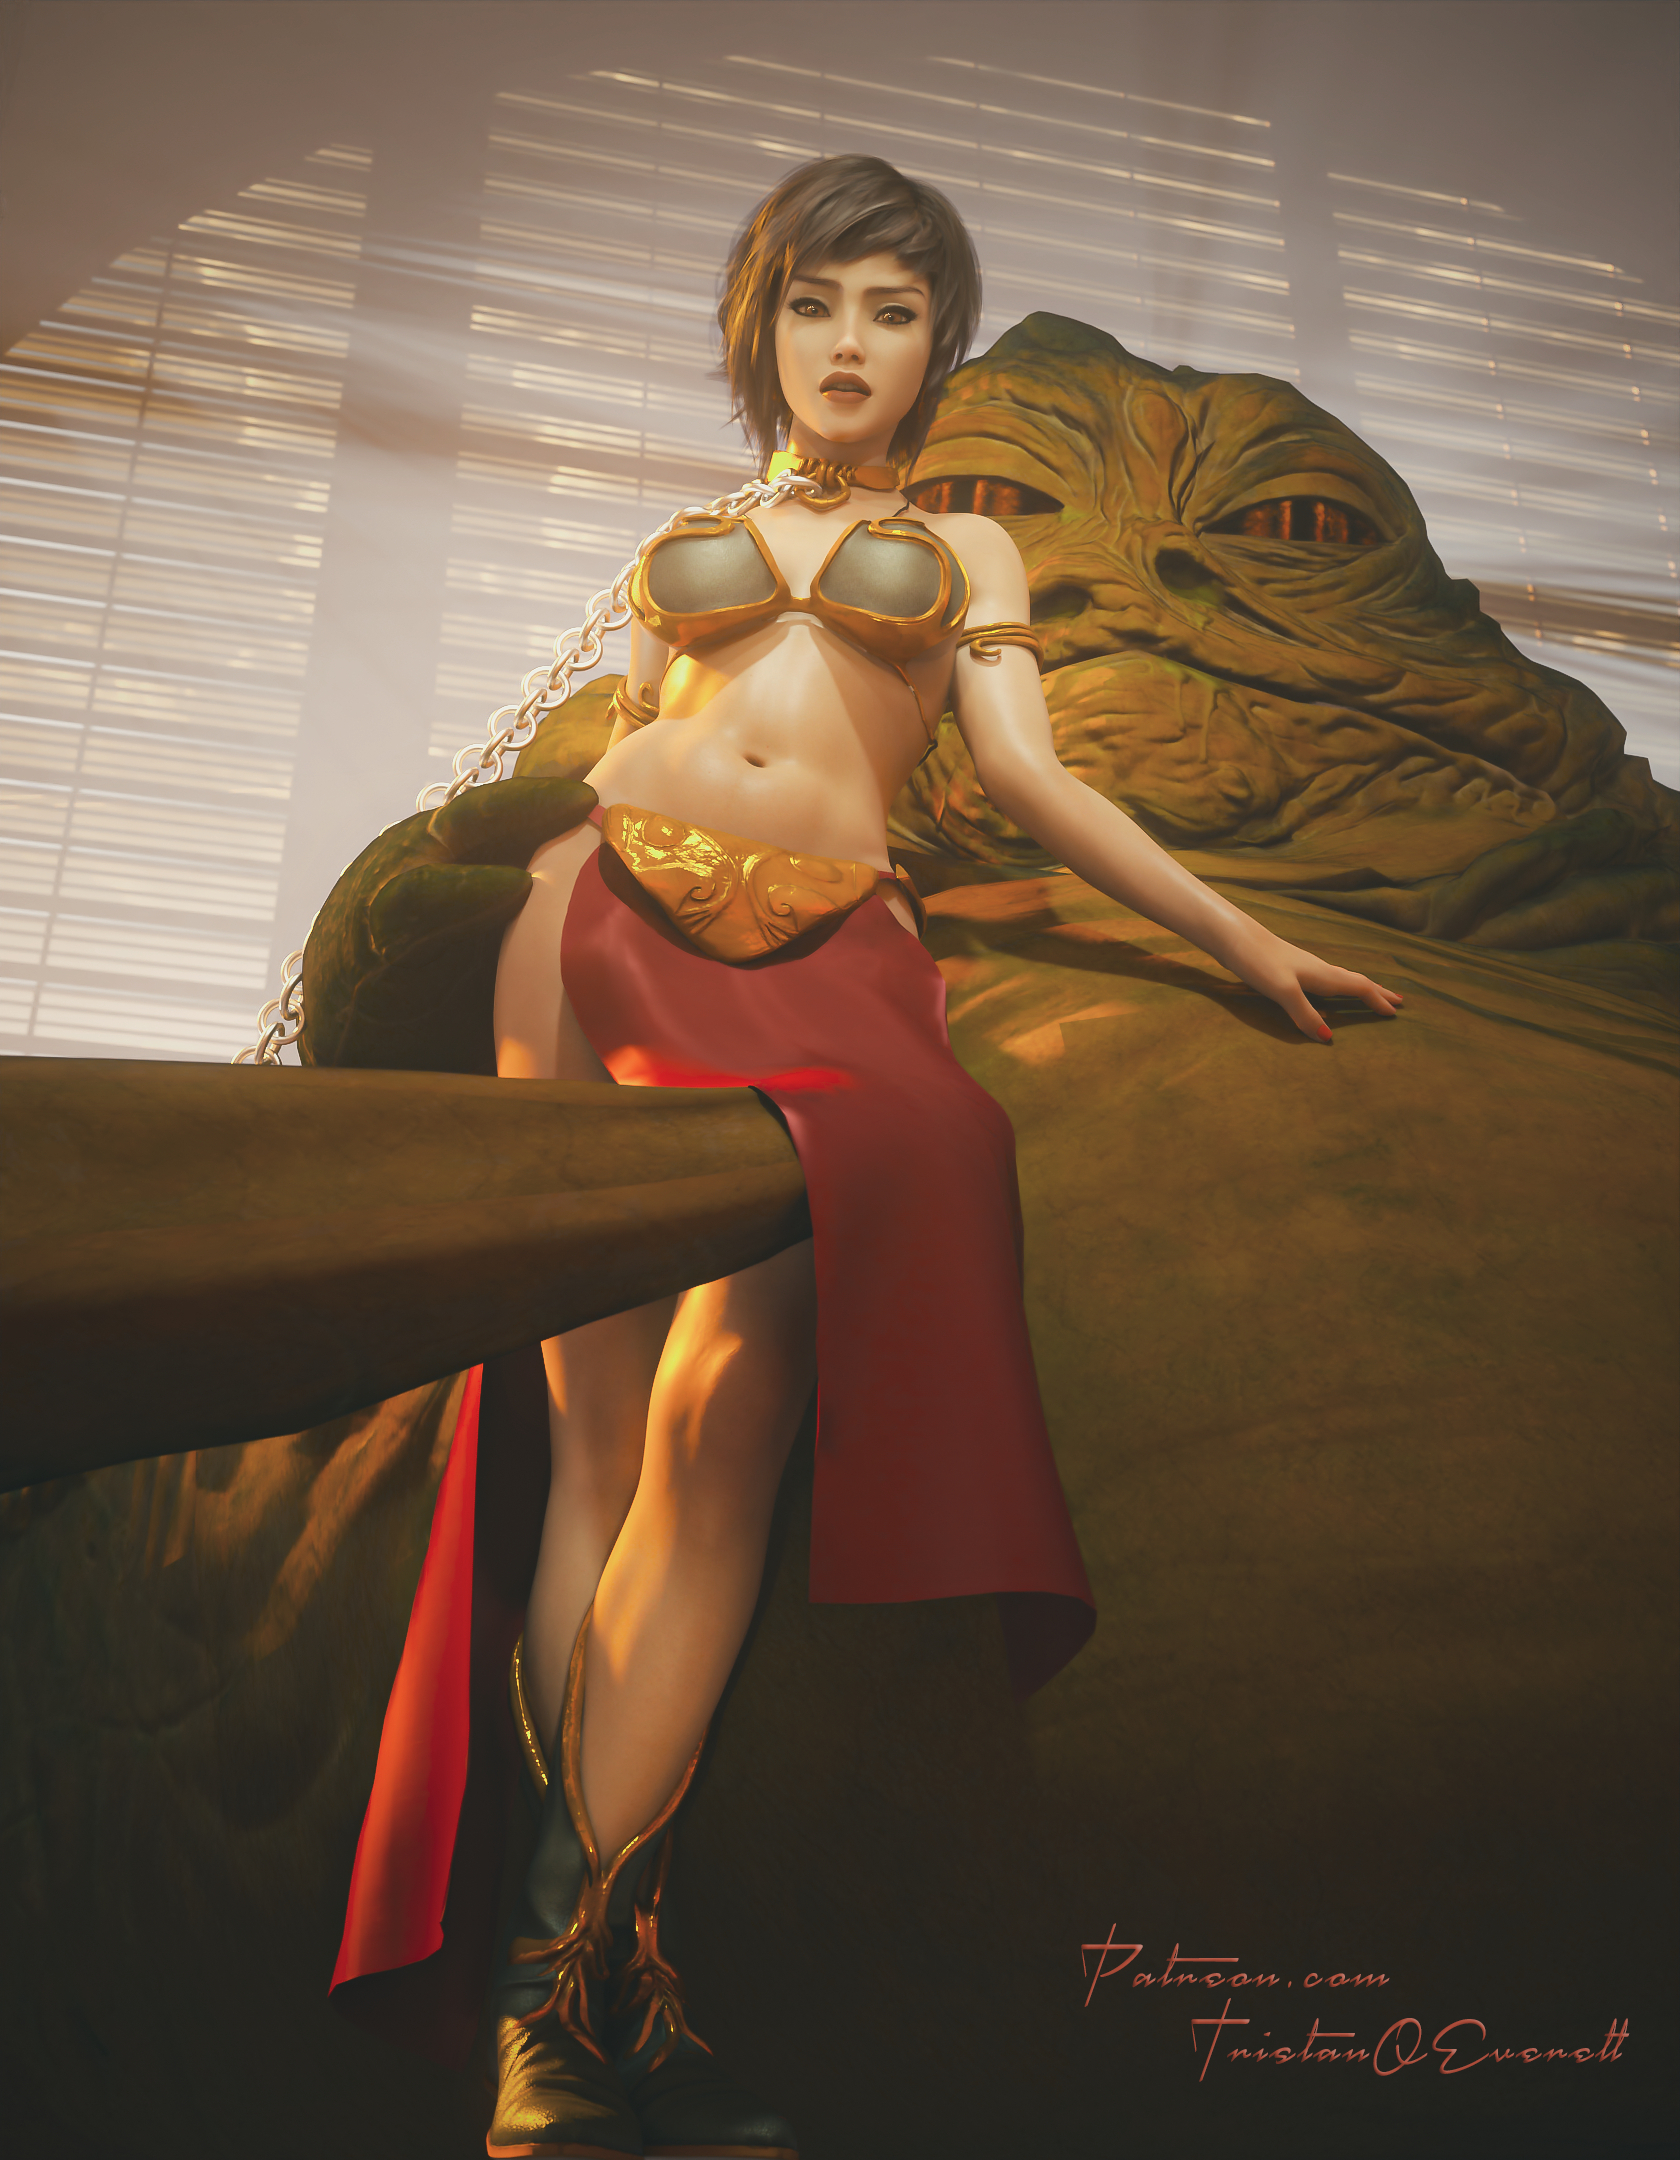 Jabba and the Butt